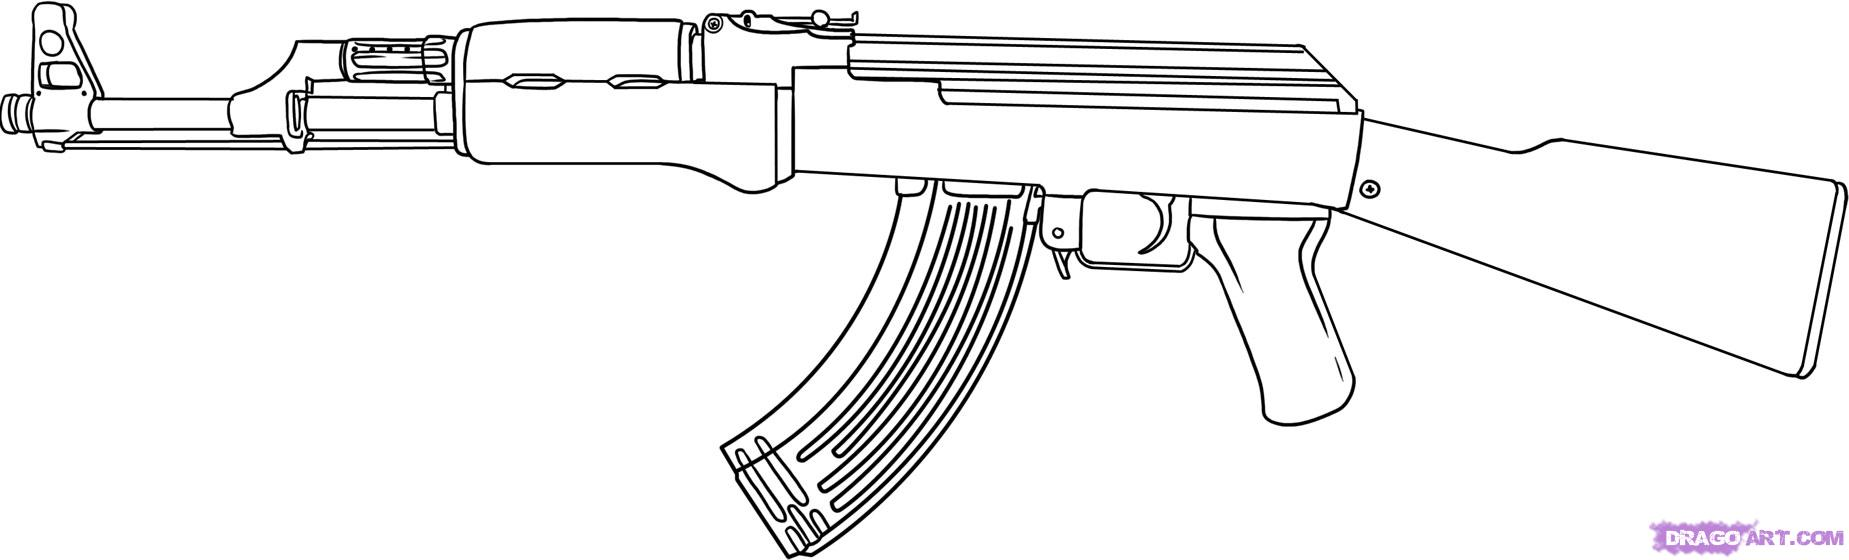 1849x560 Free Fdcfbdabbf Have Gun Coloring Pages On With Hd Resolution